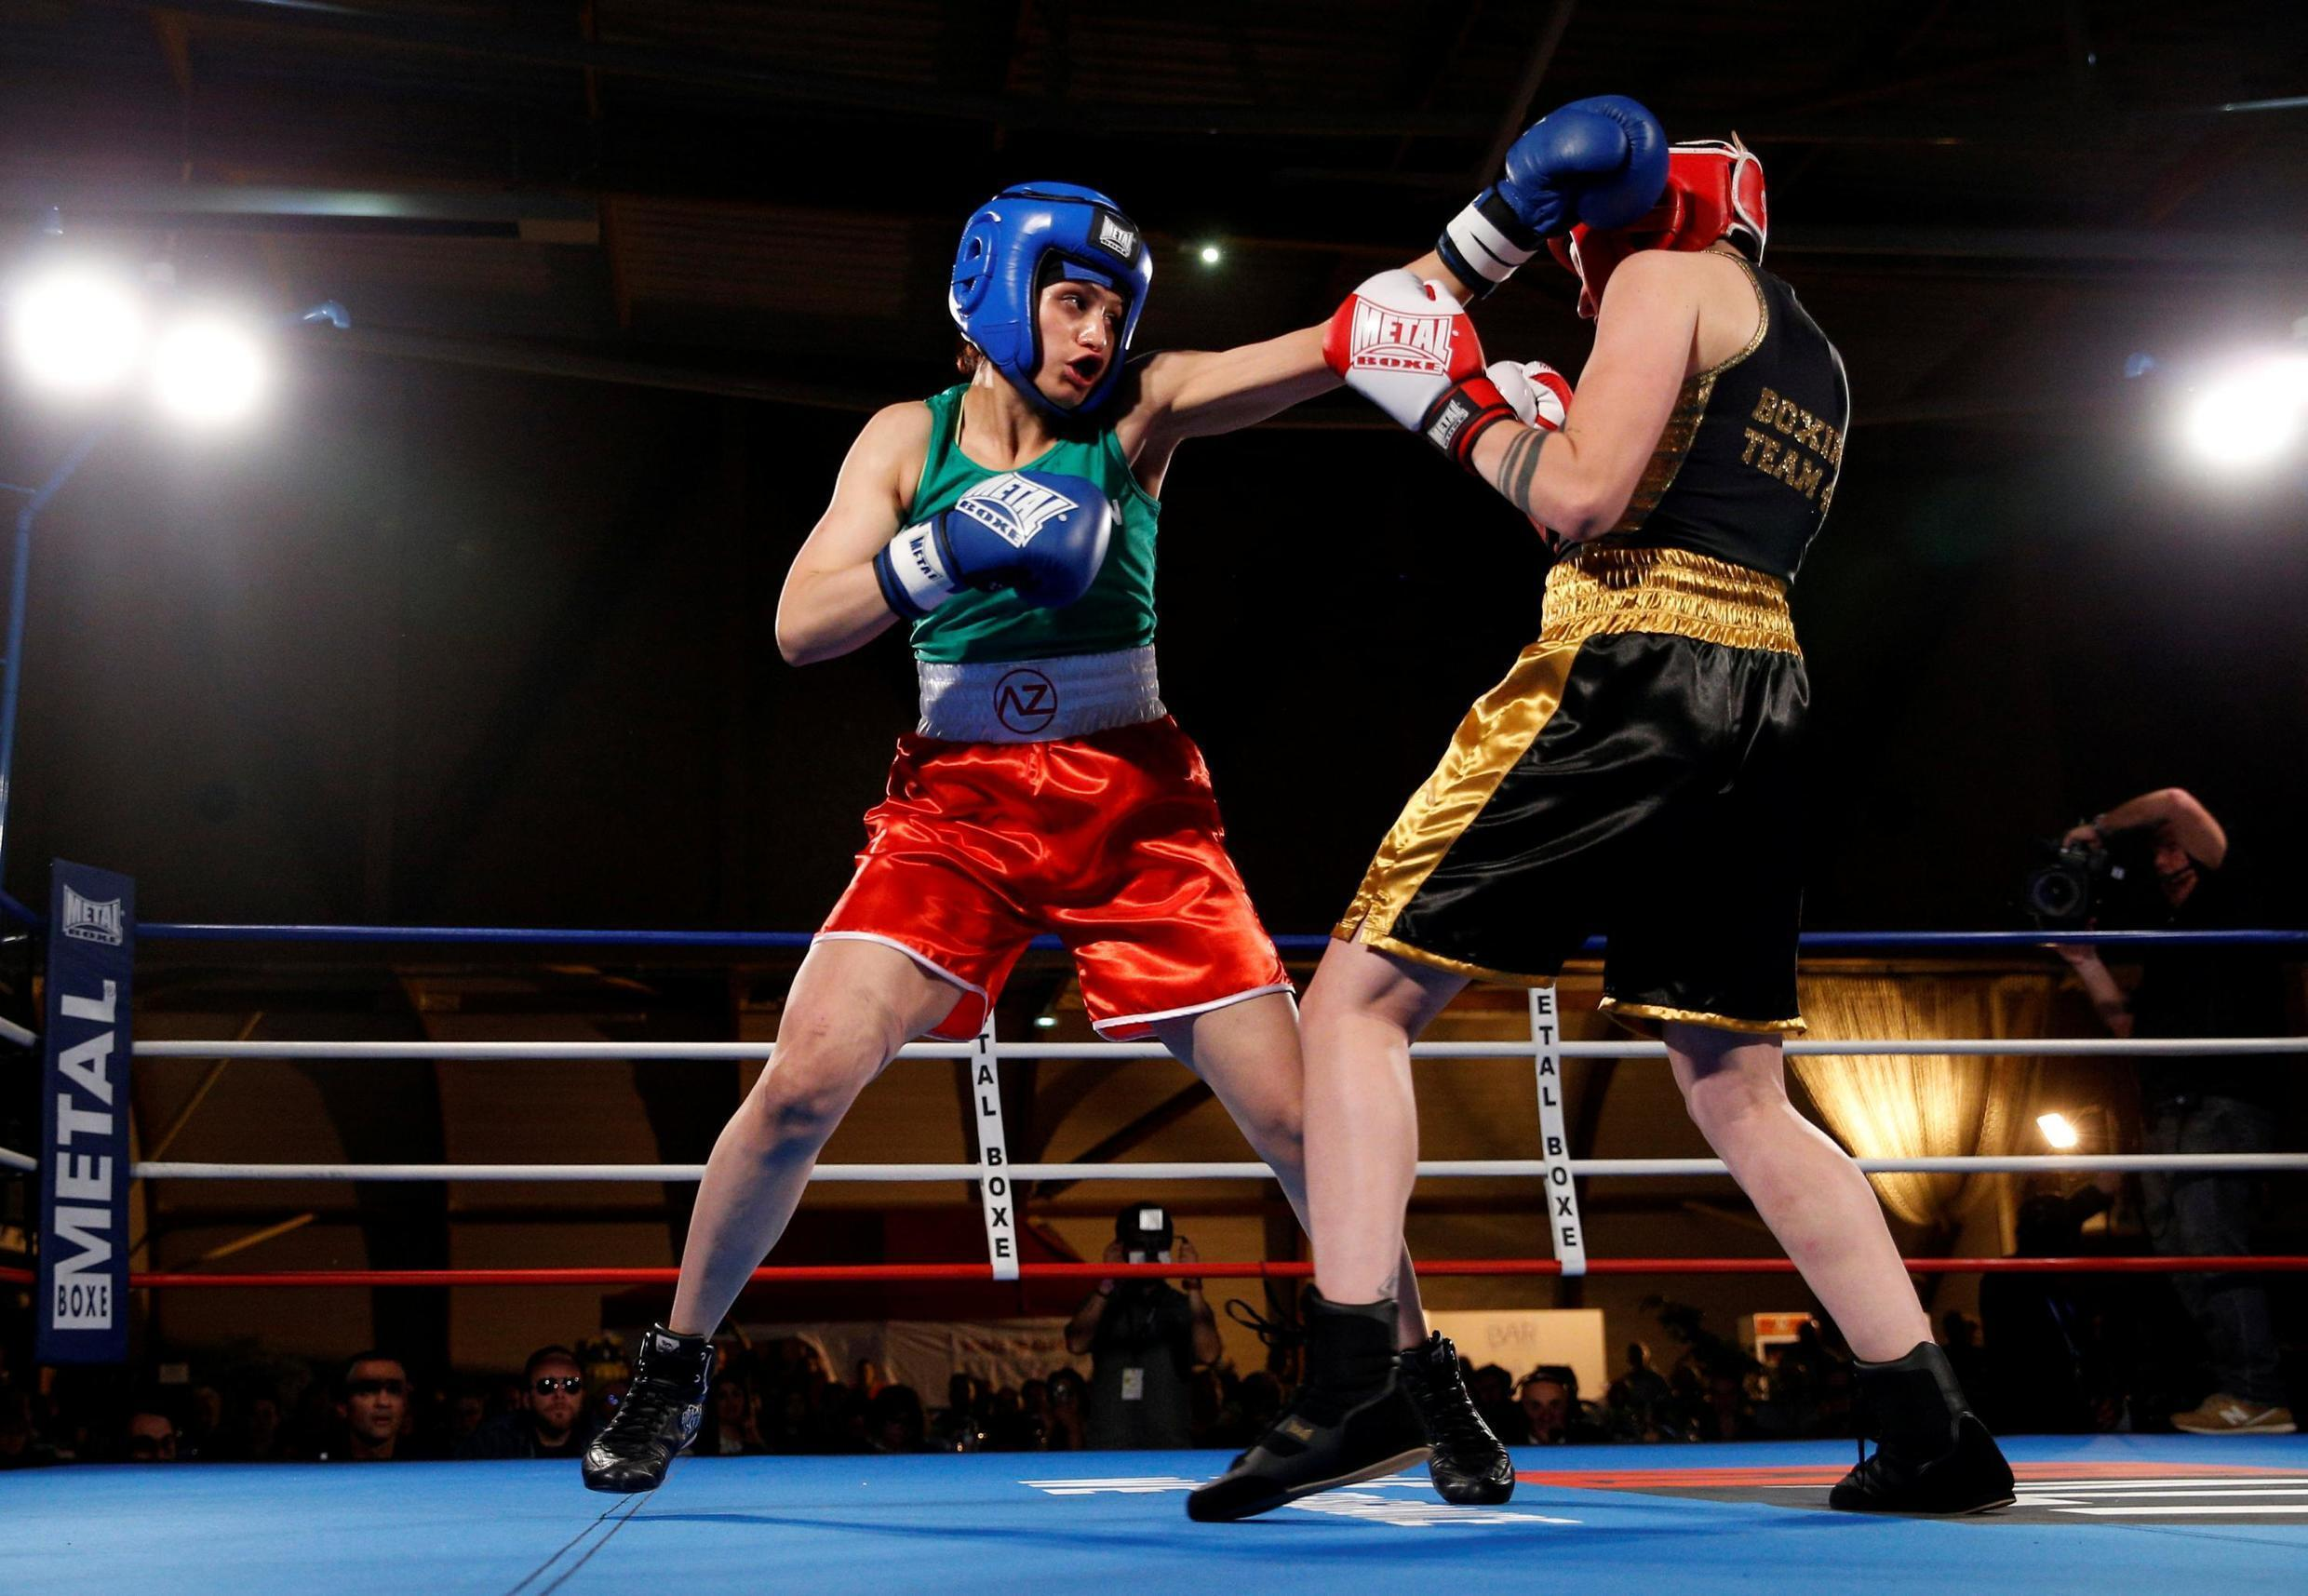 Iranian boxer Sadaf Khadem in action against French boxer Anne Chauvin during an official boxing bout in Royan, France, April 13, 2019.